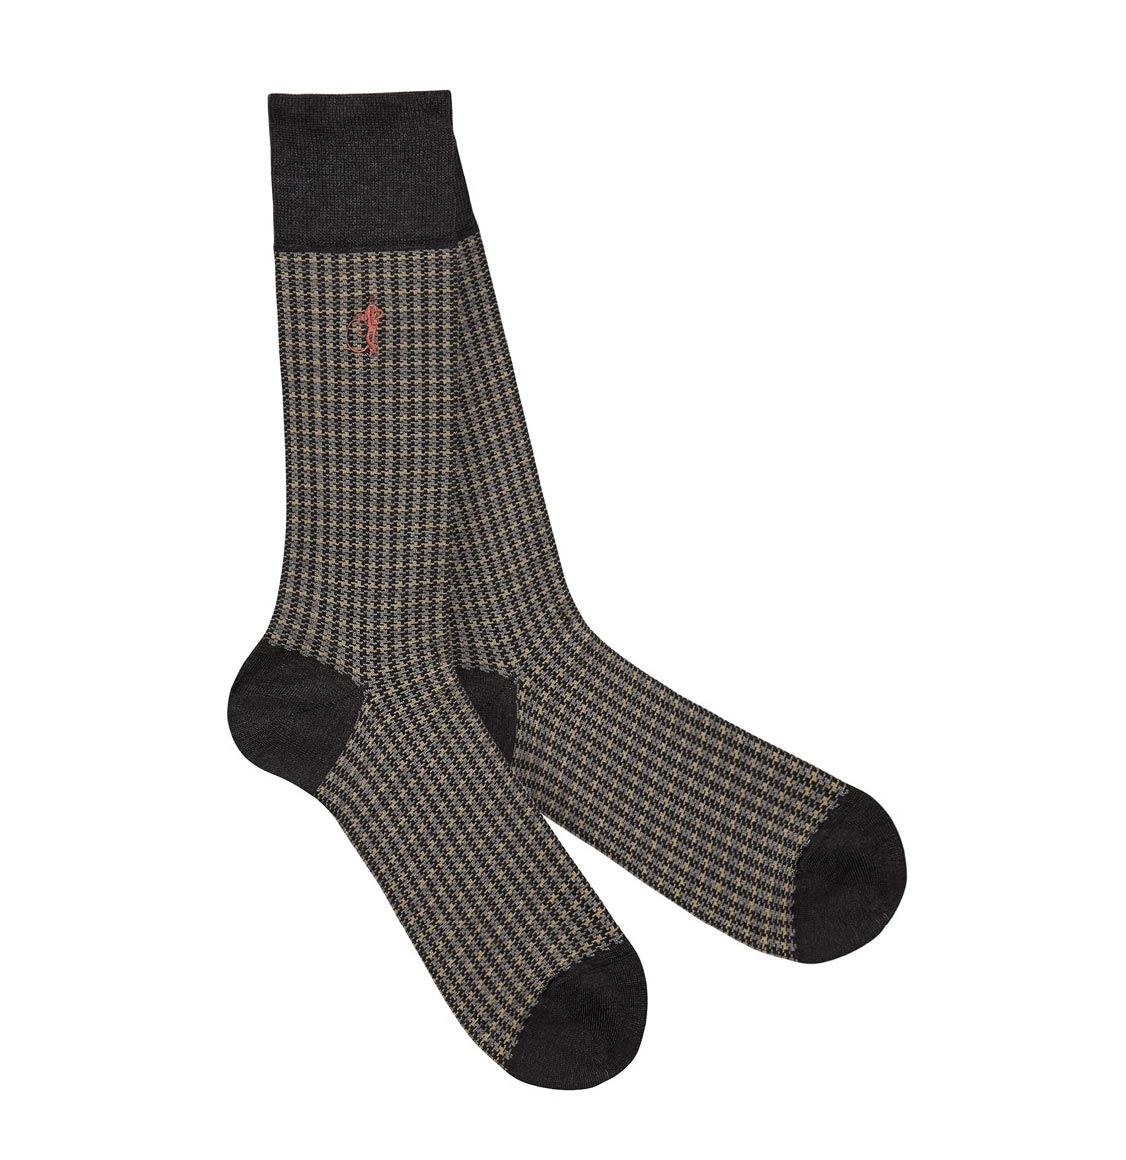 London Sock Co Shaken and Stirred Socks Espresso